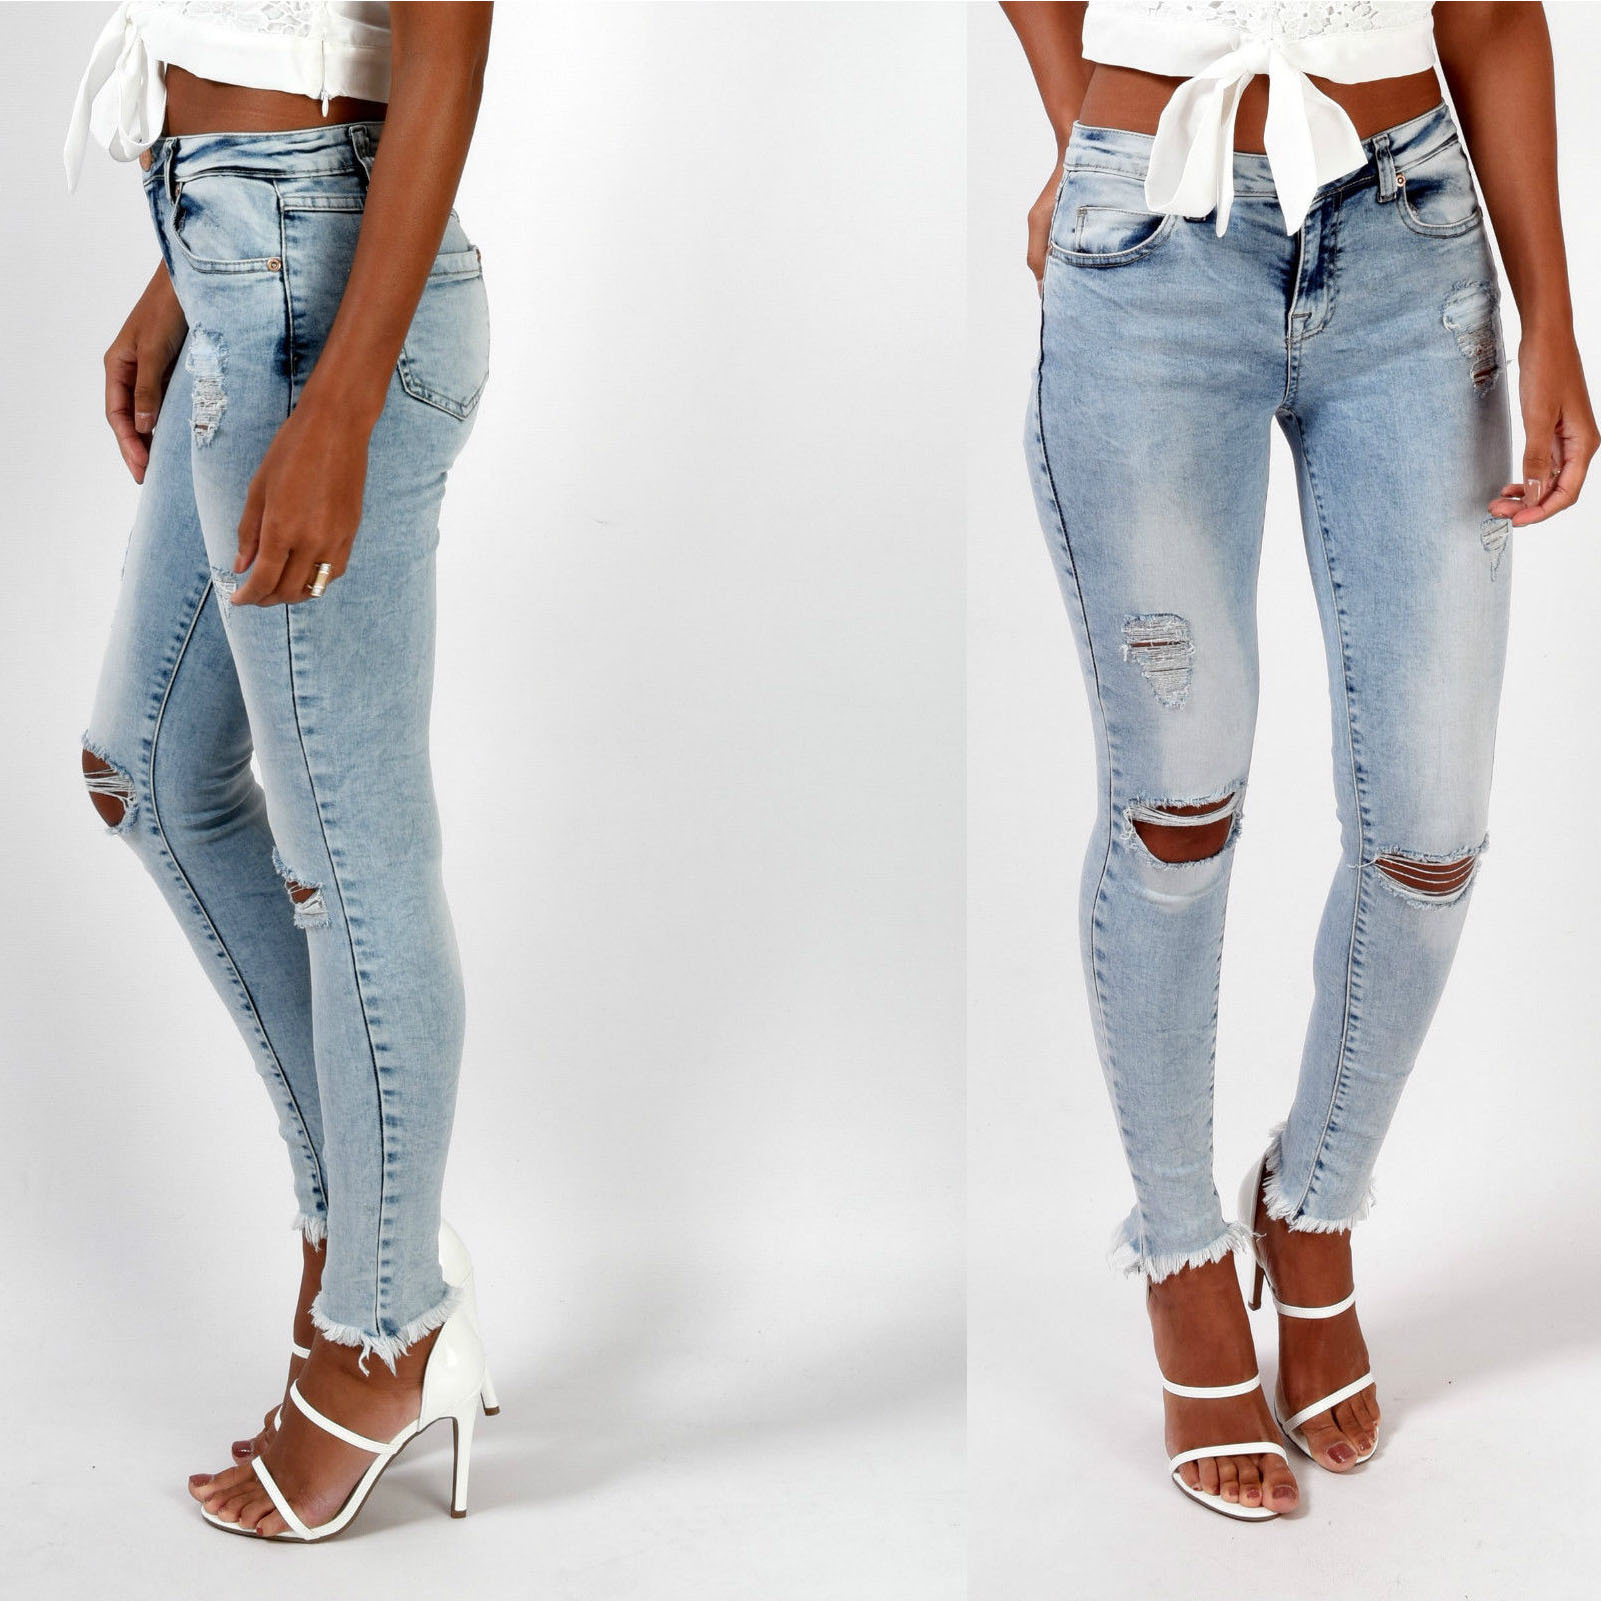 2018 Spring Vintage Jeans Women Hole Hollow Out Bleached Cotton Blue Denim Pants Mujer Elasticity Skinny Push Up Pencil Pants